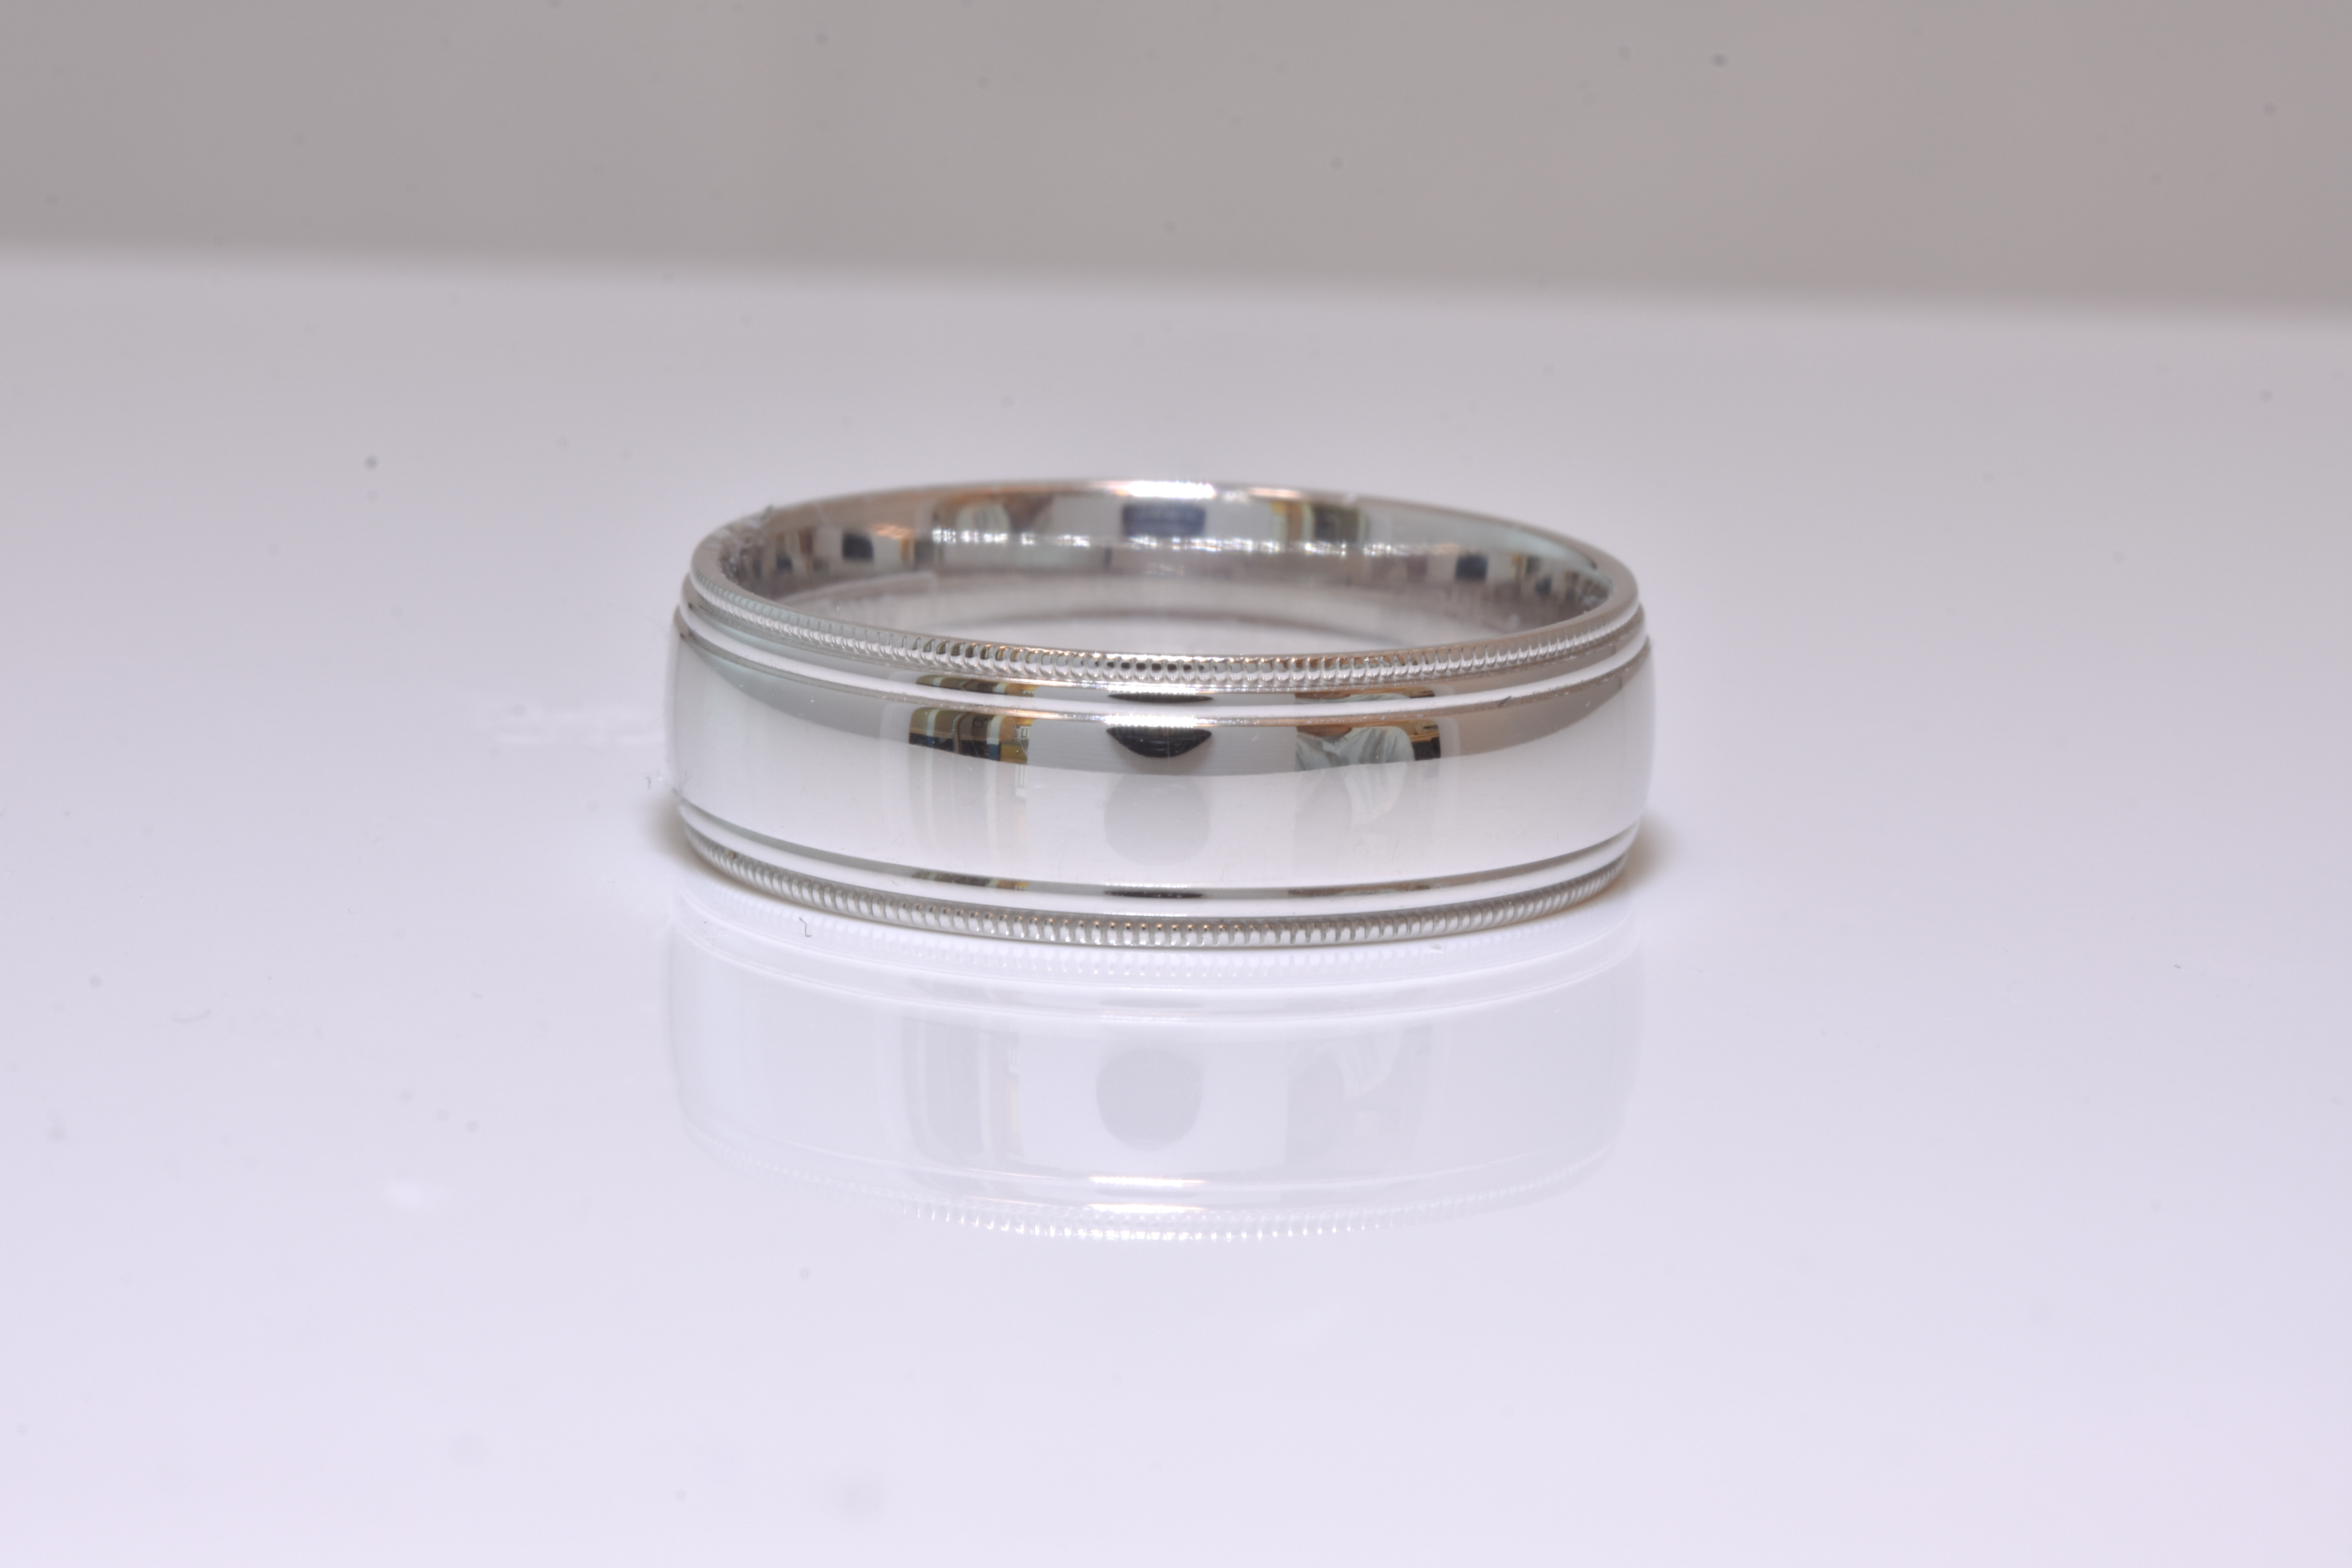 CrownRing-Gent's 14 kt. White Gold Wedding Band.  Accented with Polished Milgrain.  Sku#405-00041